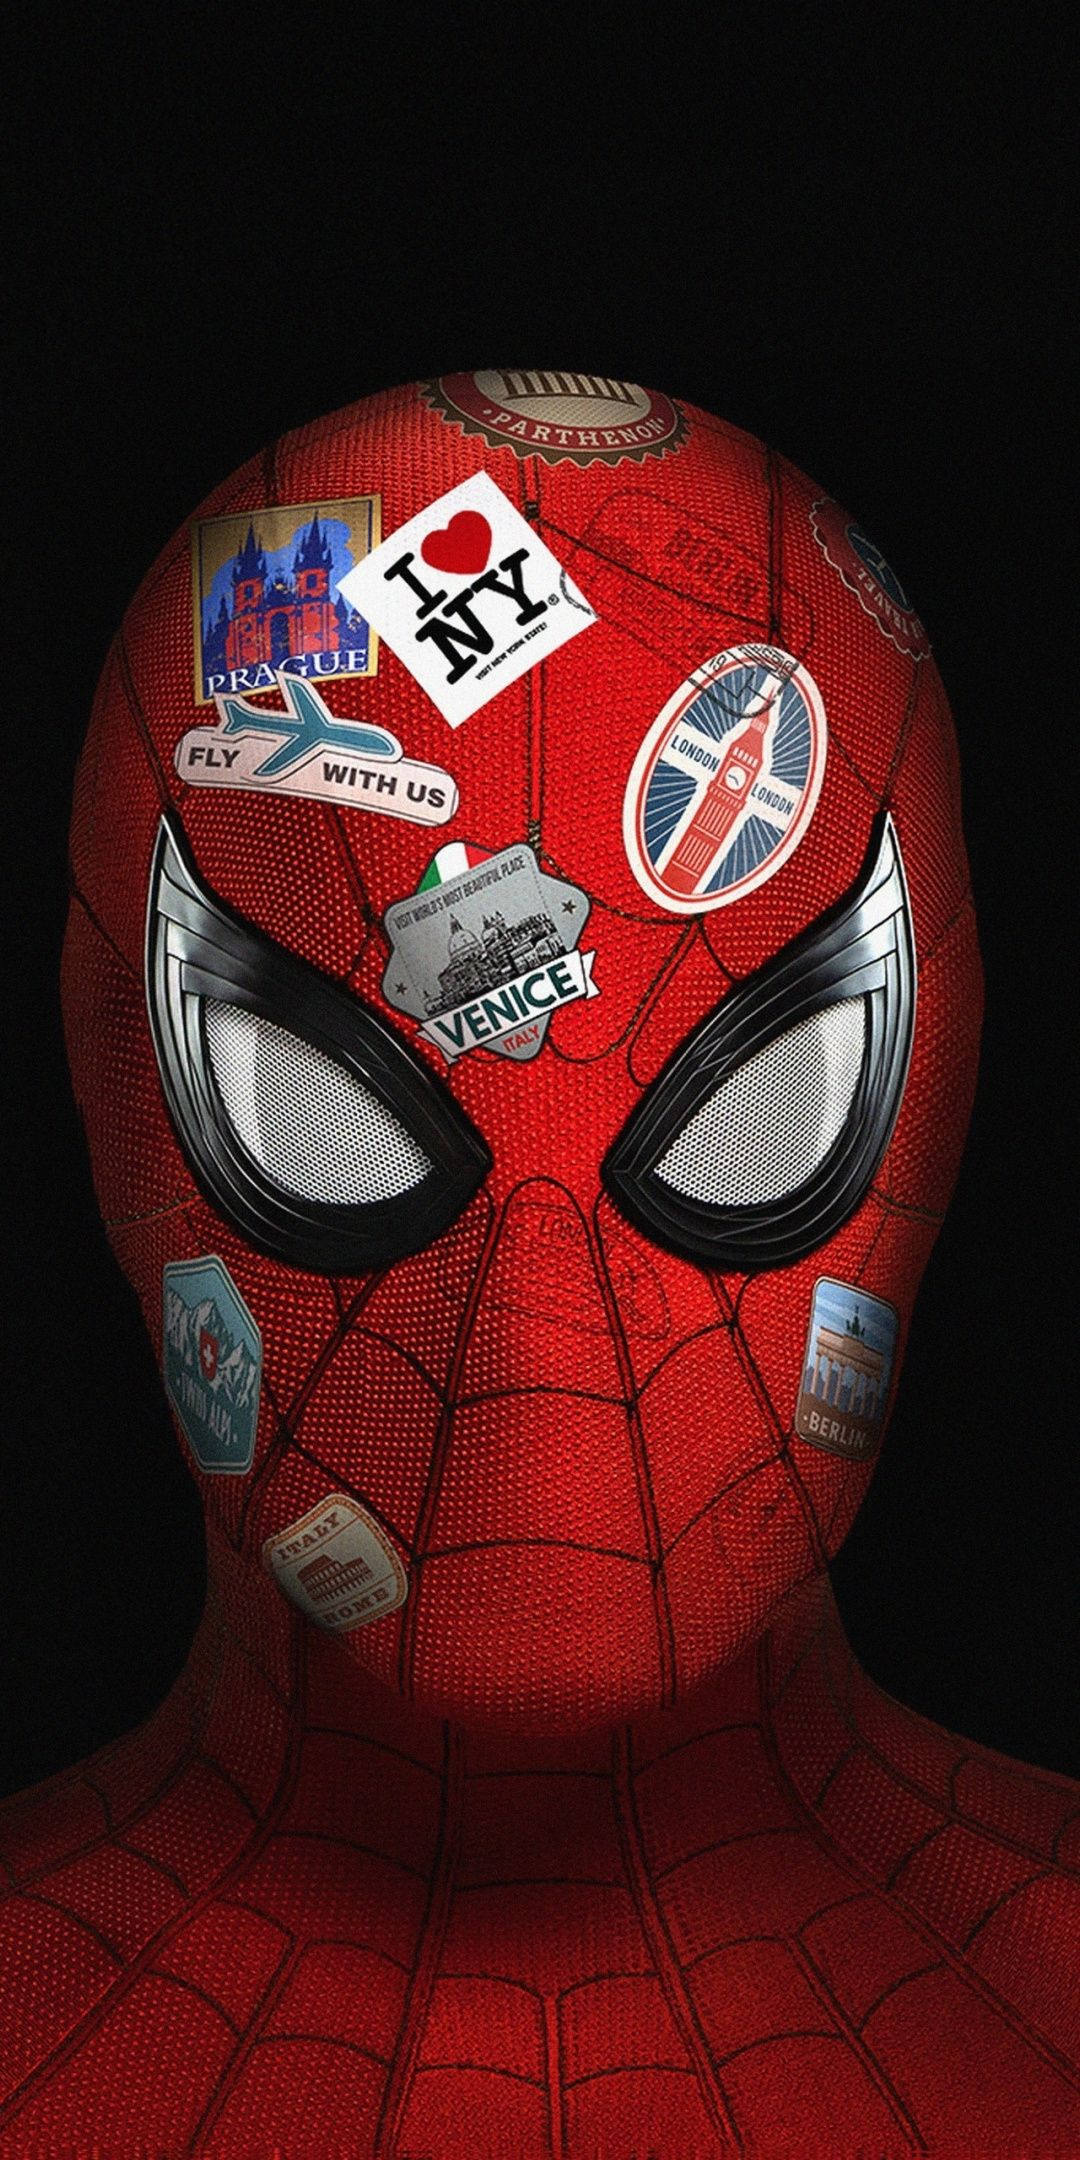 1080x2160 Spider Man Far From Home Cover Poster Artwork Wallpaper Marvel Comics Wallpaper Marvel Artwork Wallpapers Marvel